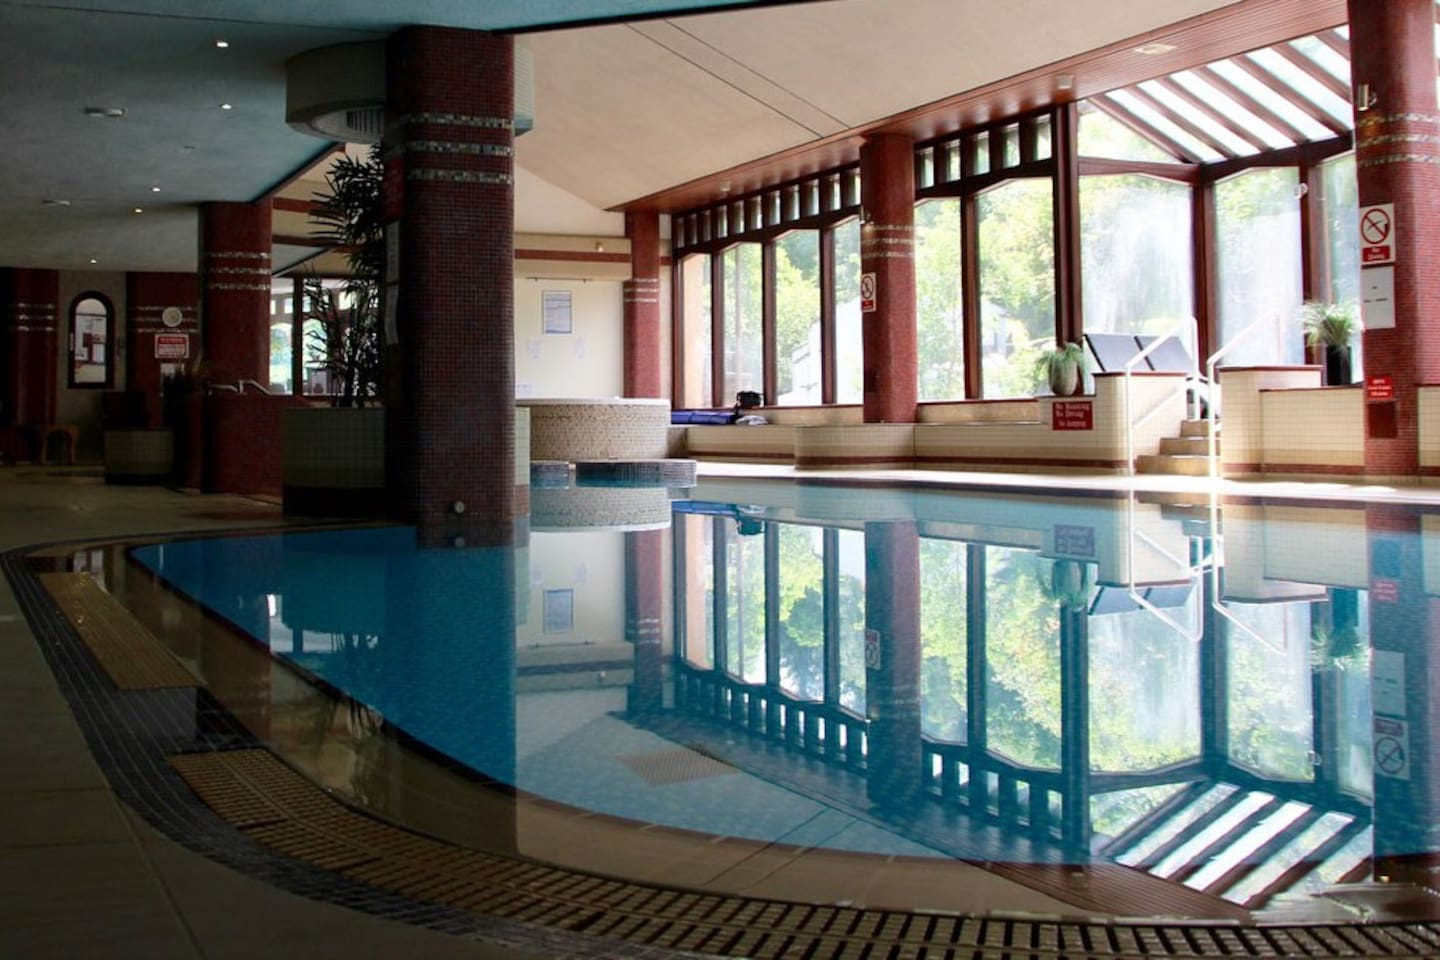 cascades heated indoor pool, jacuzzi, steam room, sauna, gymnasium all available during your stay...